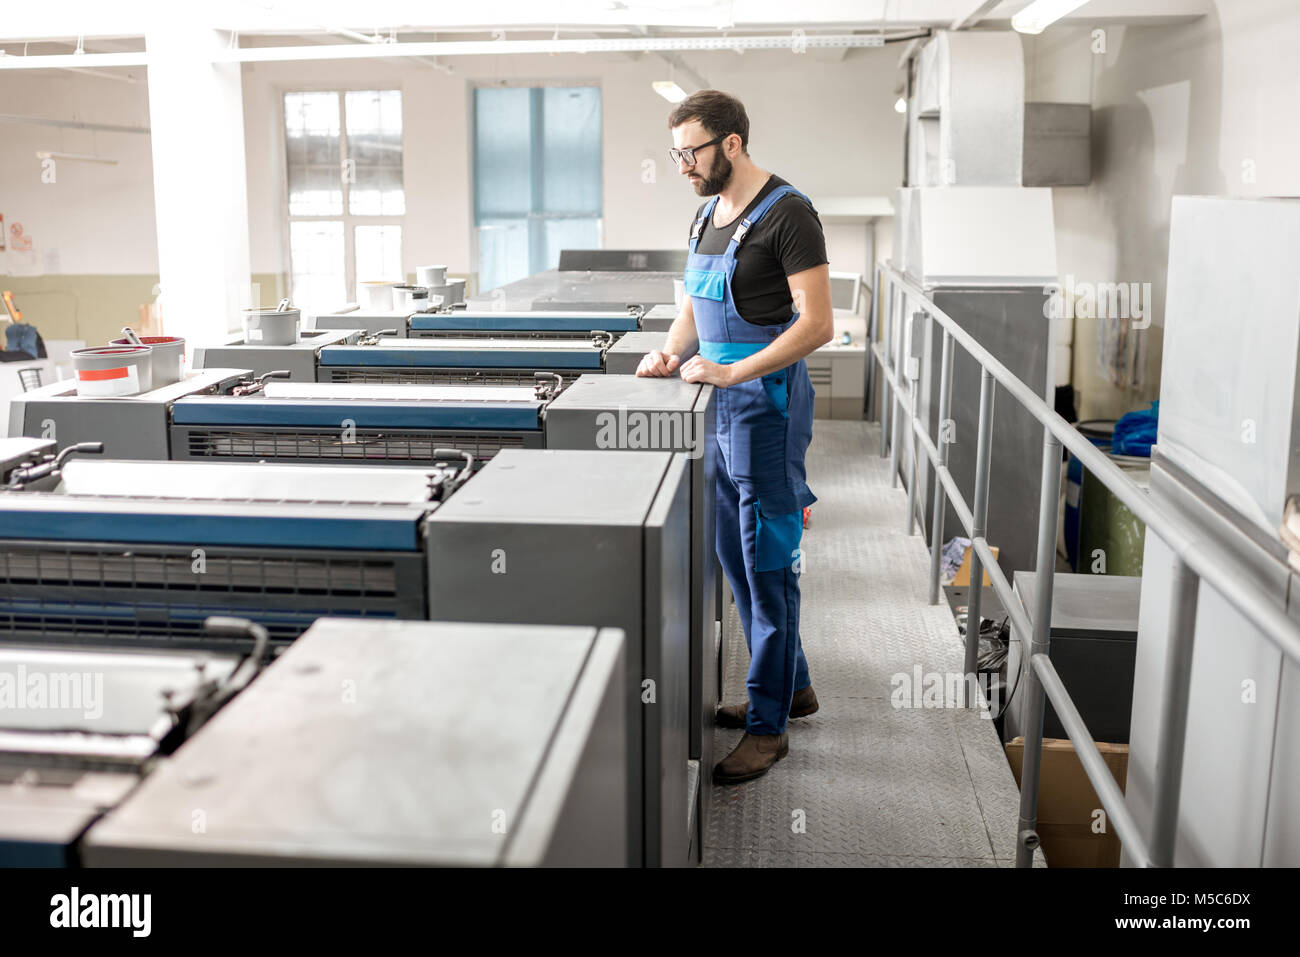 Supervising offset printing machine at the manufacturing - Stock Image